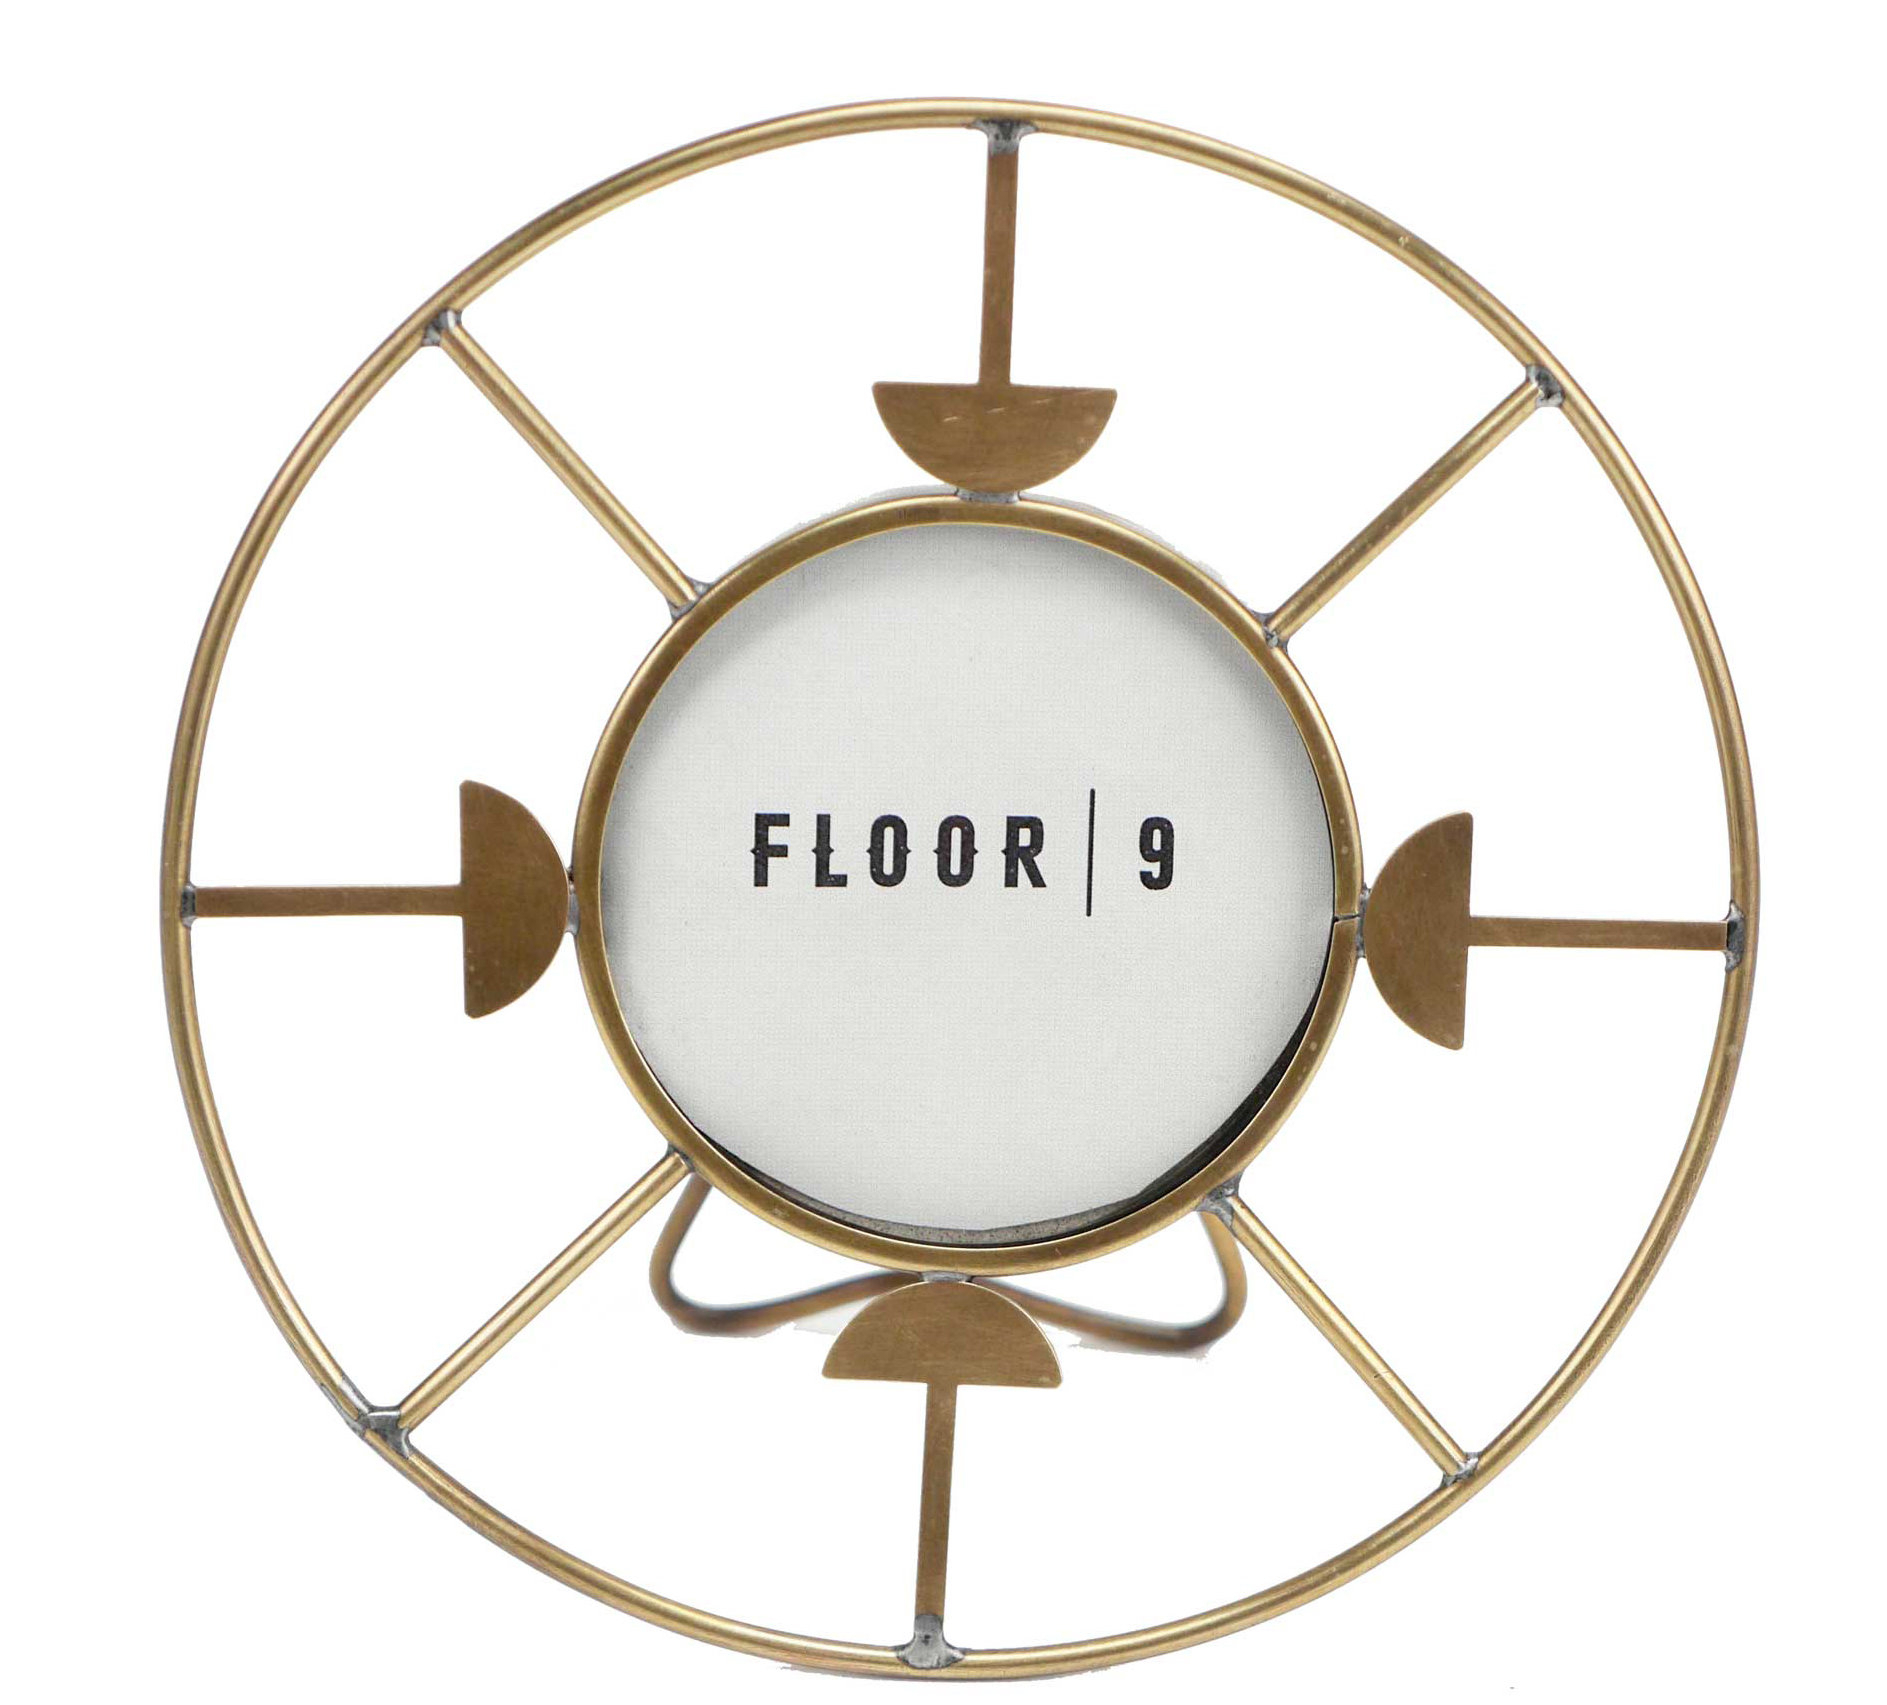 Millanocket Metal Wheel Photo Holder Wall Decor Intended For Well Liked Floor 9 Greggs Circular Picture Frame (View 12 of 20)